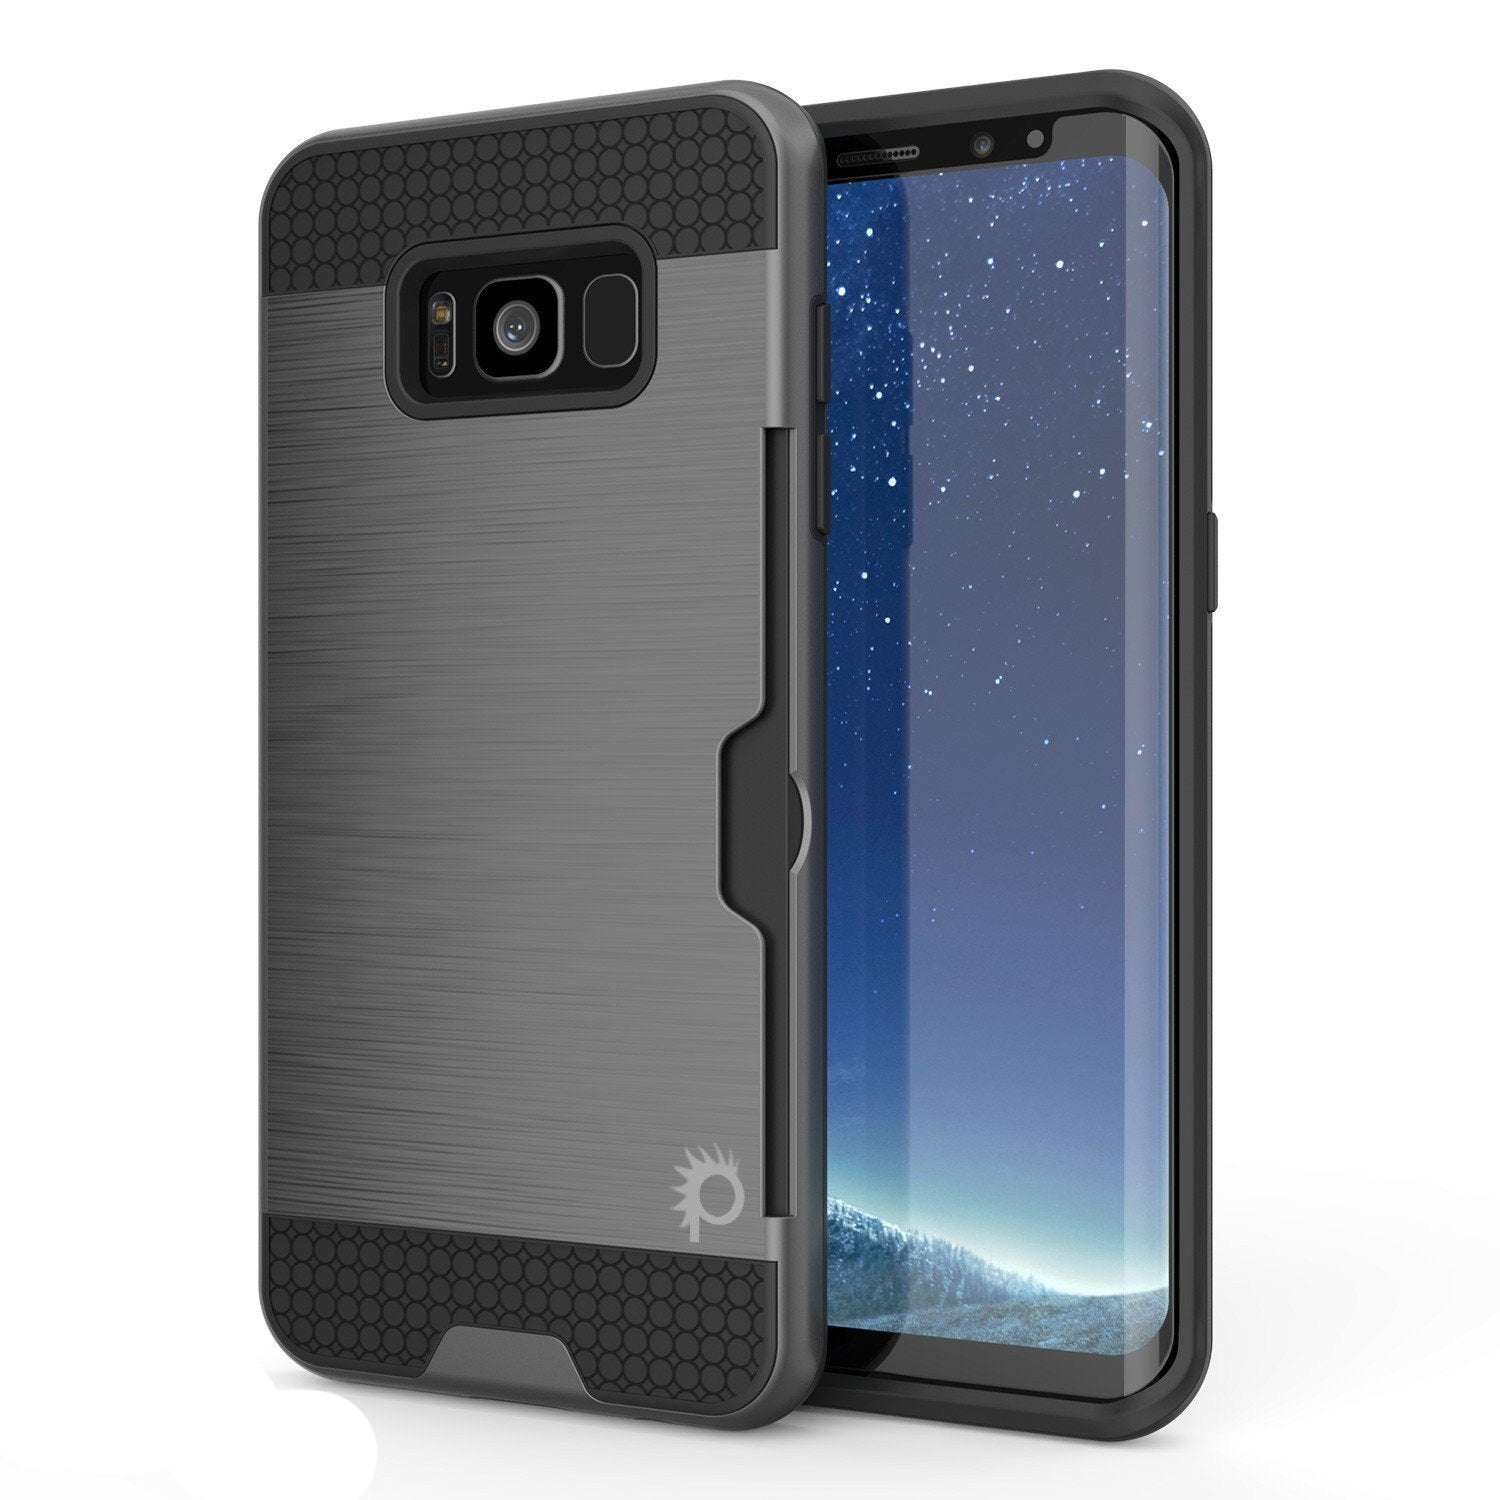 Galaxy S8 Plus Punkcase SLOT Series Dual-Layer Armor Cover, Grey